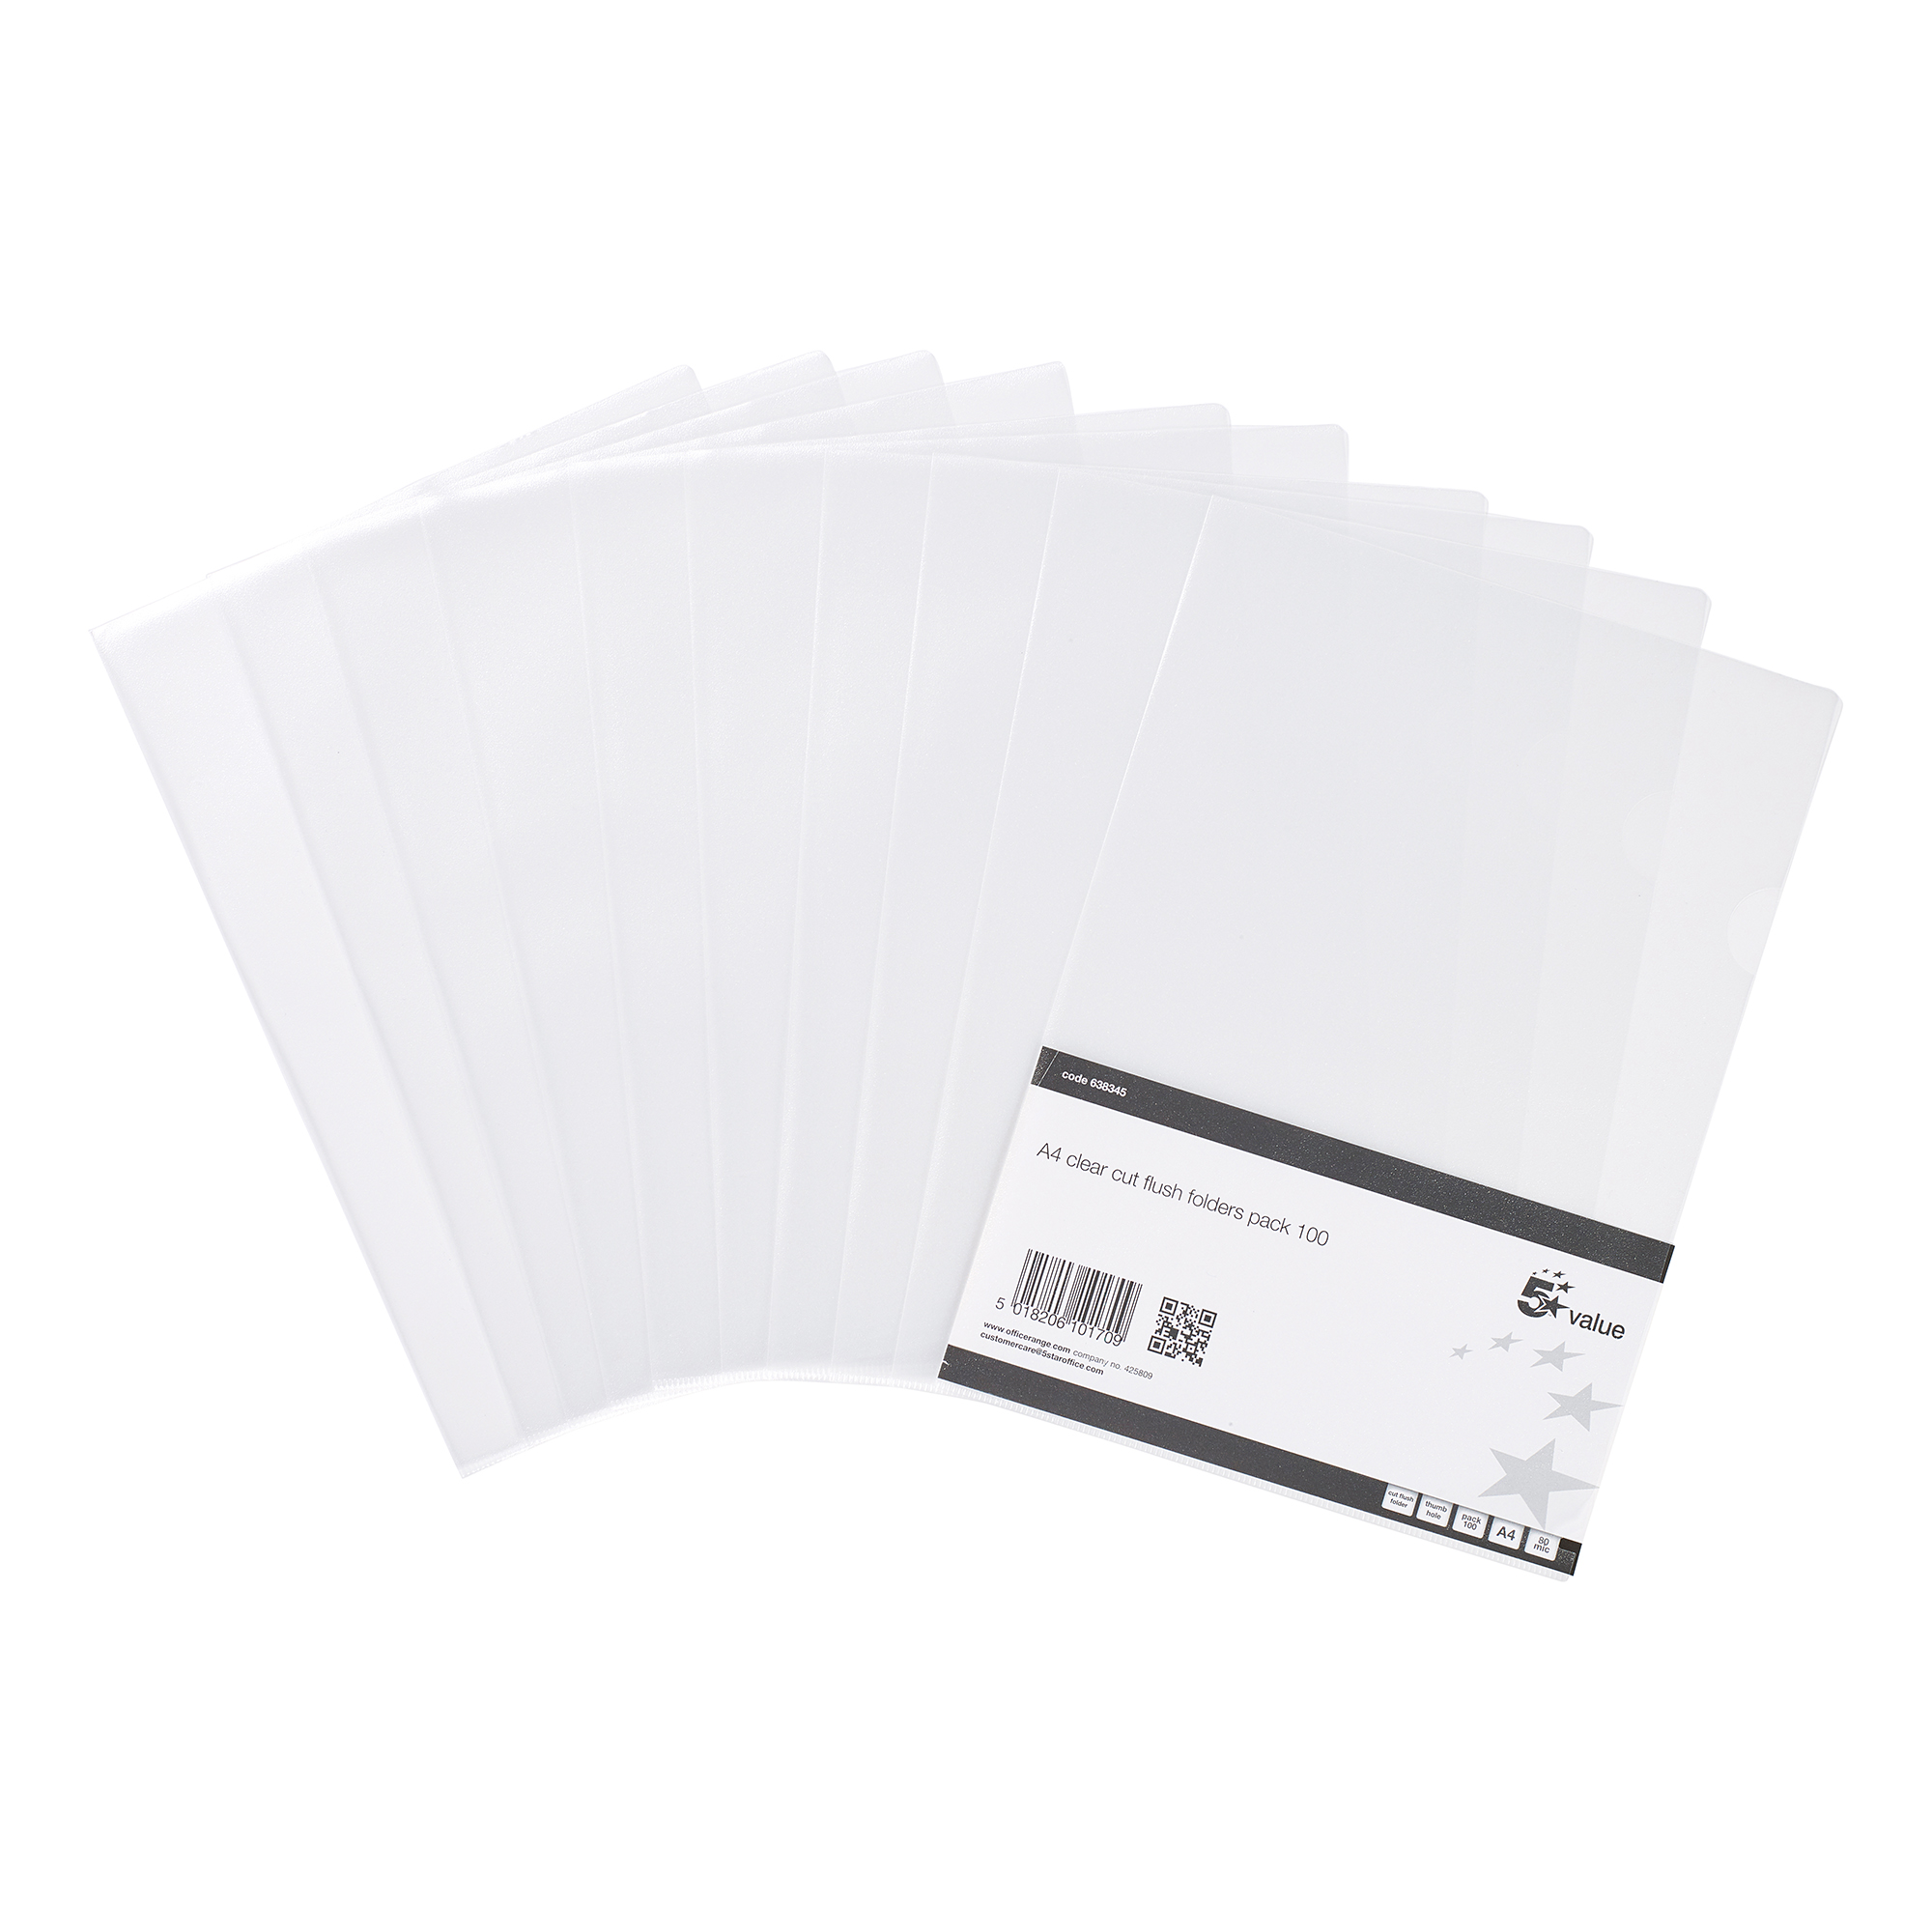 Clip Files 5 Star Value Folder Embossed Cut Flush Polypropylene 80 Micron A4 Clear Pack 100